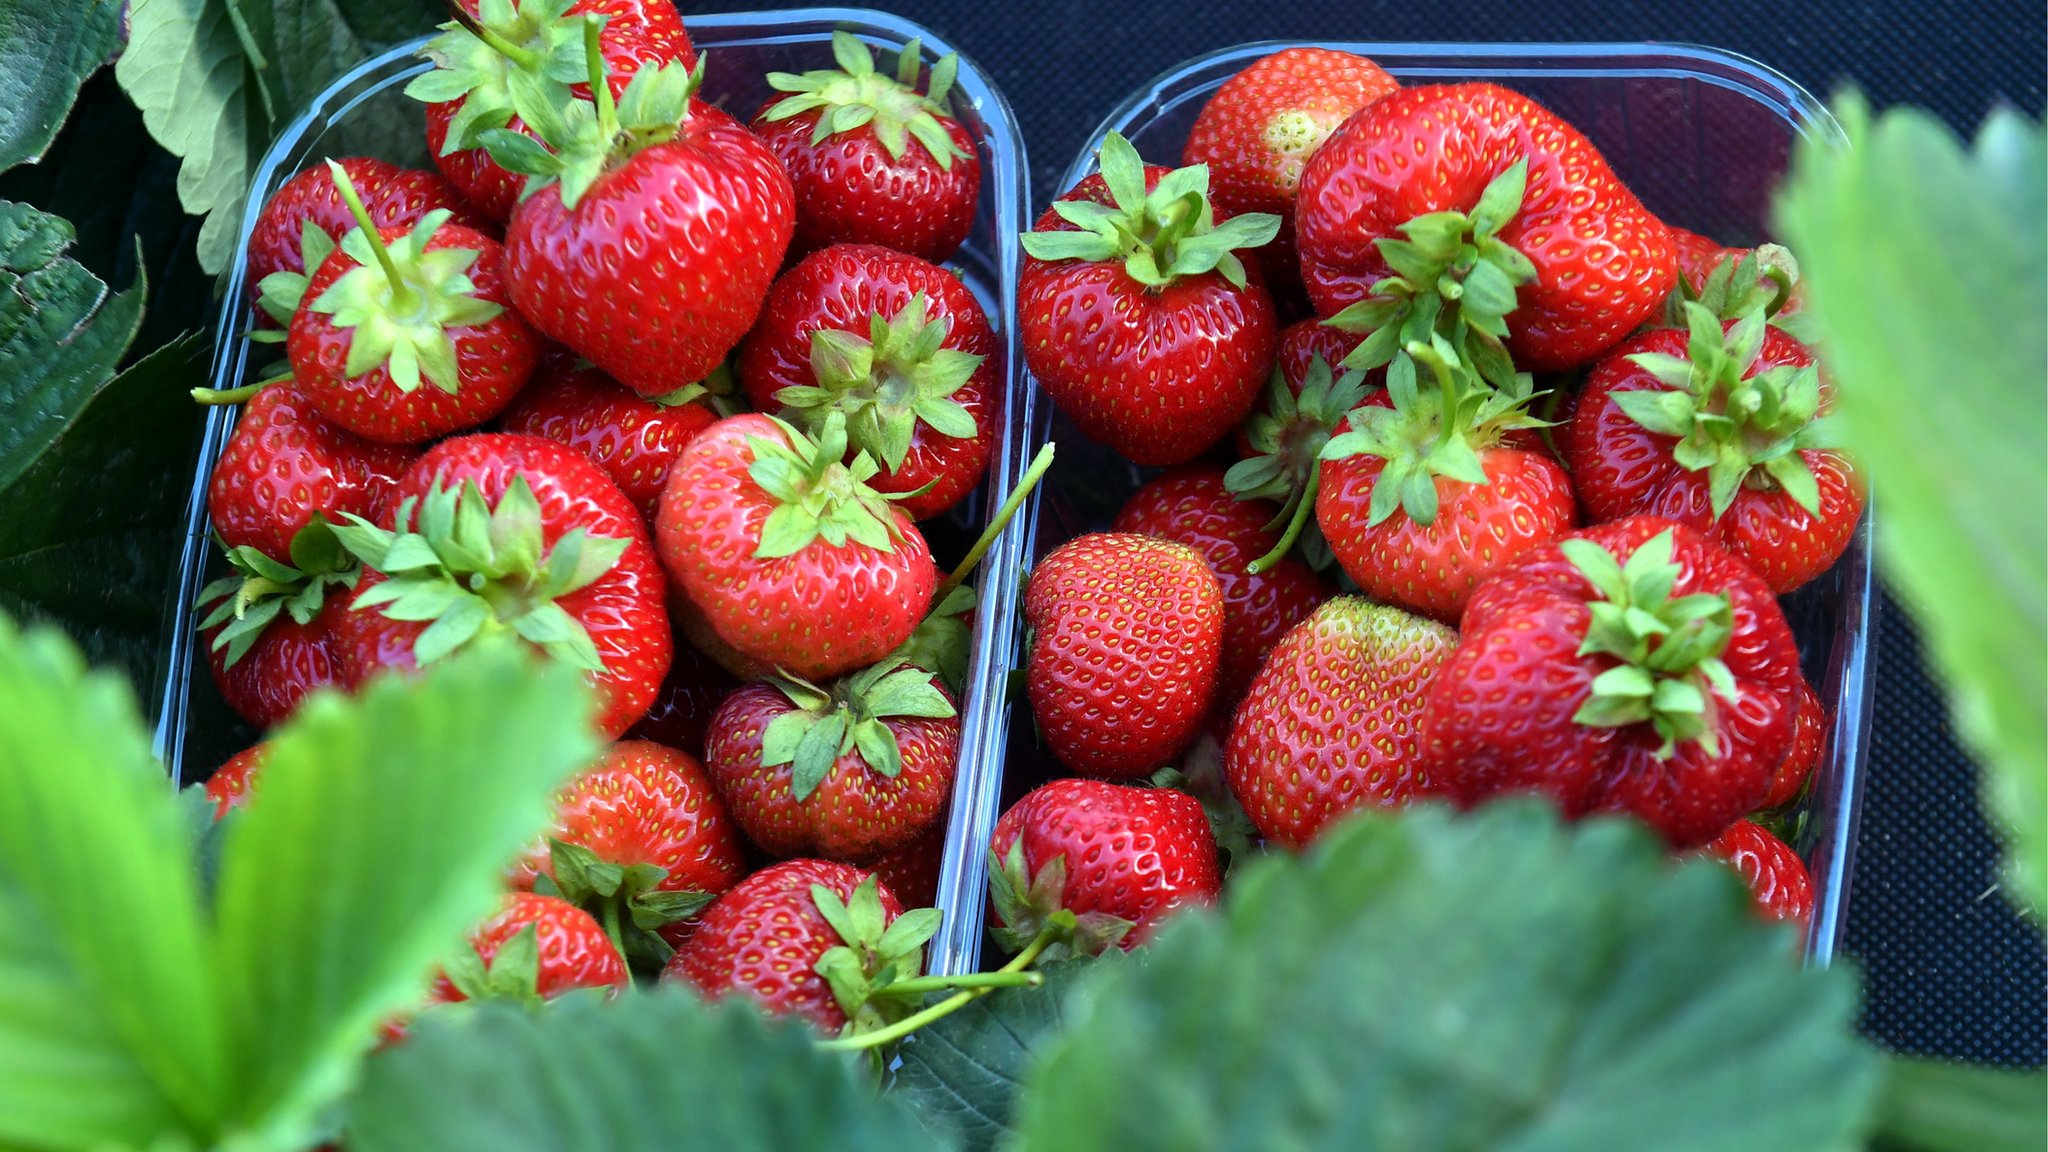 Three arrested over 'large scale' Kent strawberry thefts